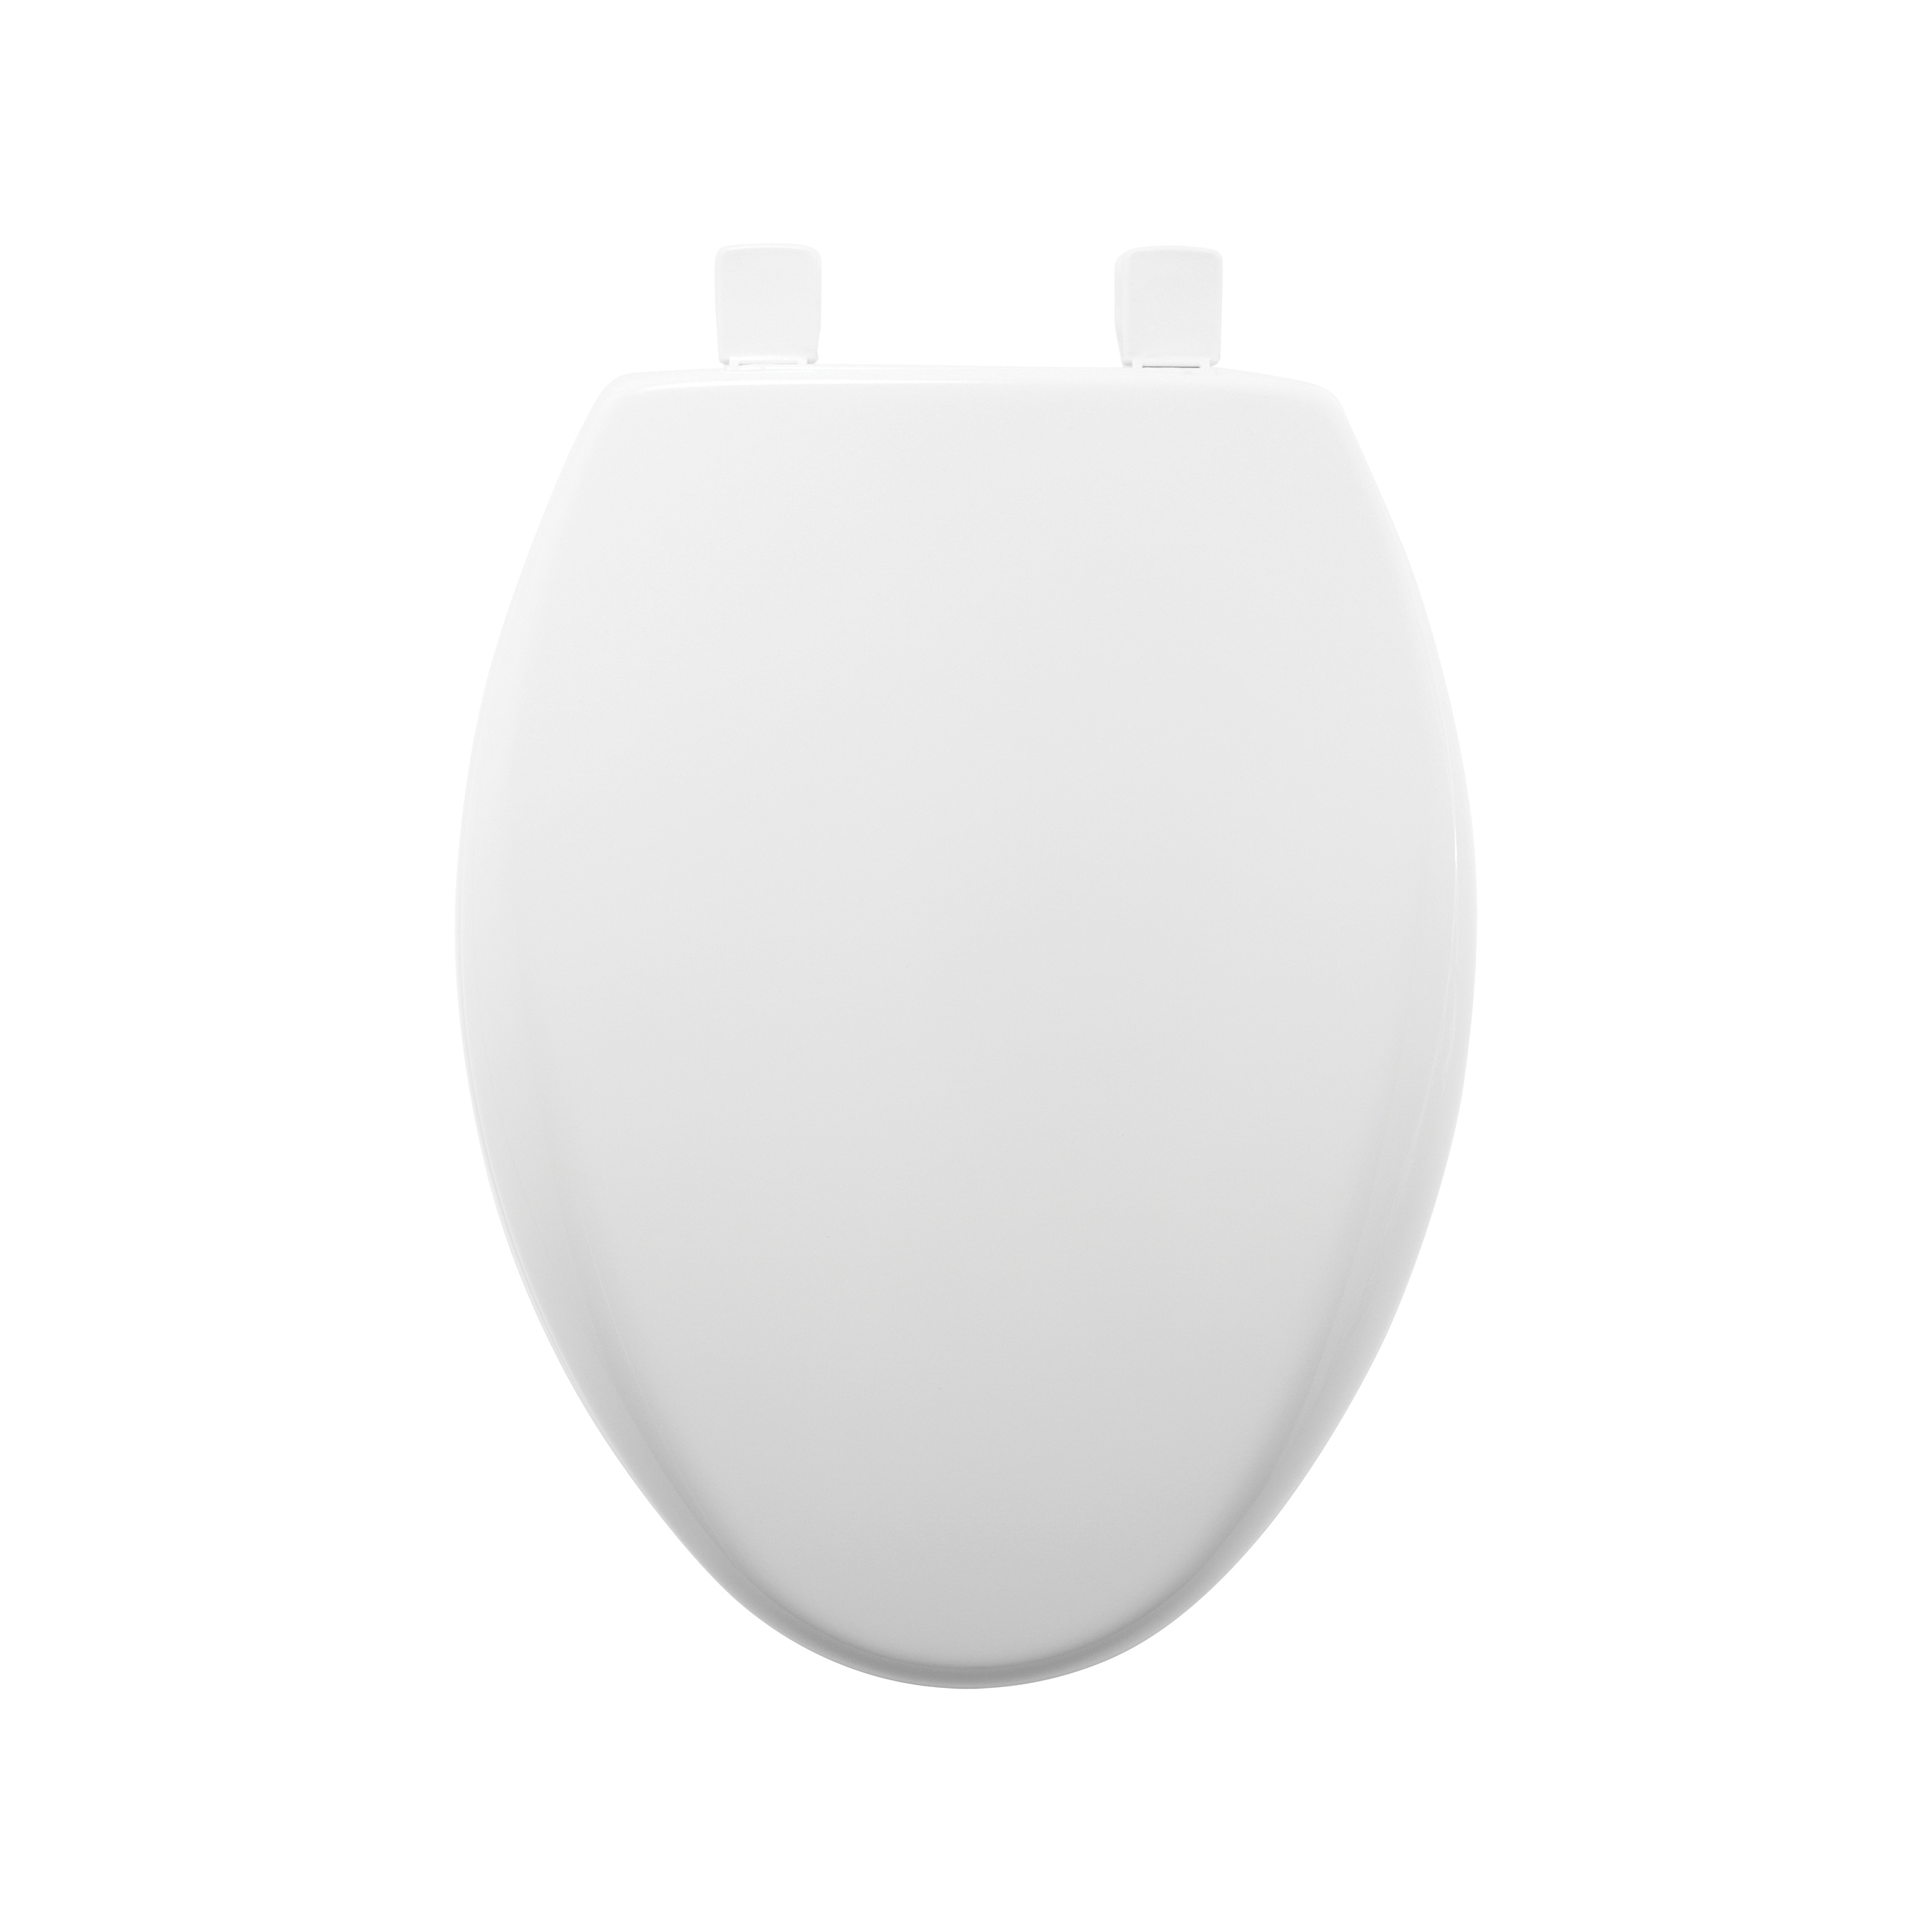 Bemis® AFFINITY™ 1200E3 000 Toilet Seat With Cover, Elongated Bowl, Closed Front, Plastic, White, Easy Clean/Change® Adjustable Hinge, Domestic